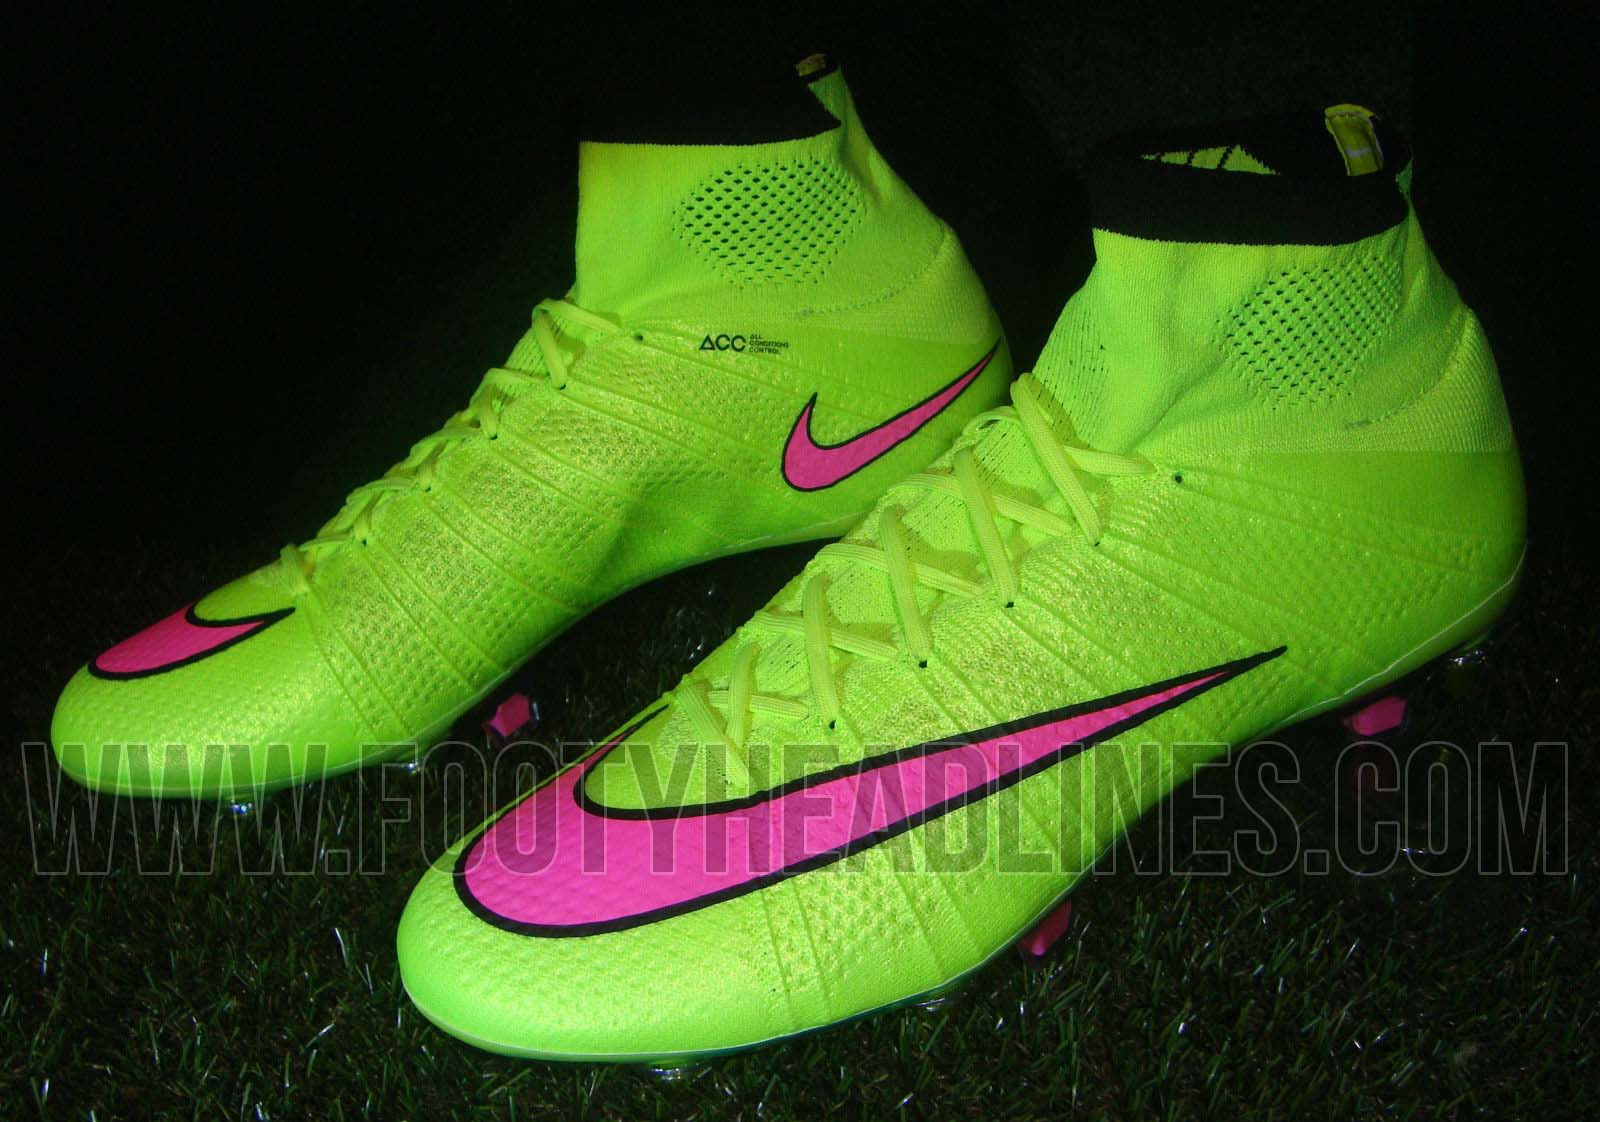 new product 8029c e0abd Volt Nike Mercurial Superfly 2015 Boot Leaked